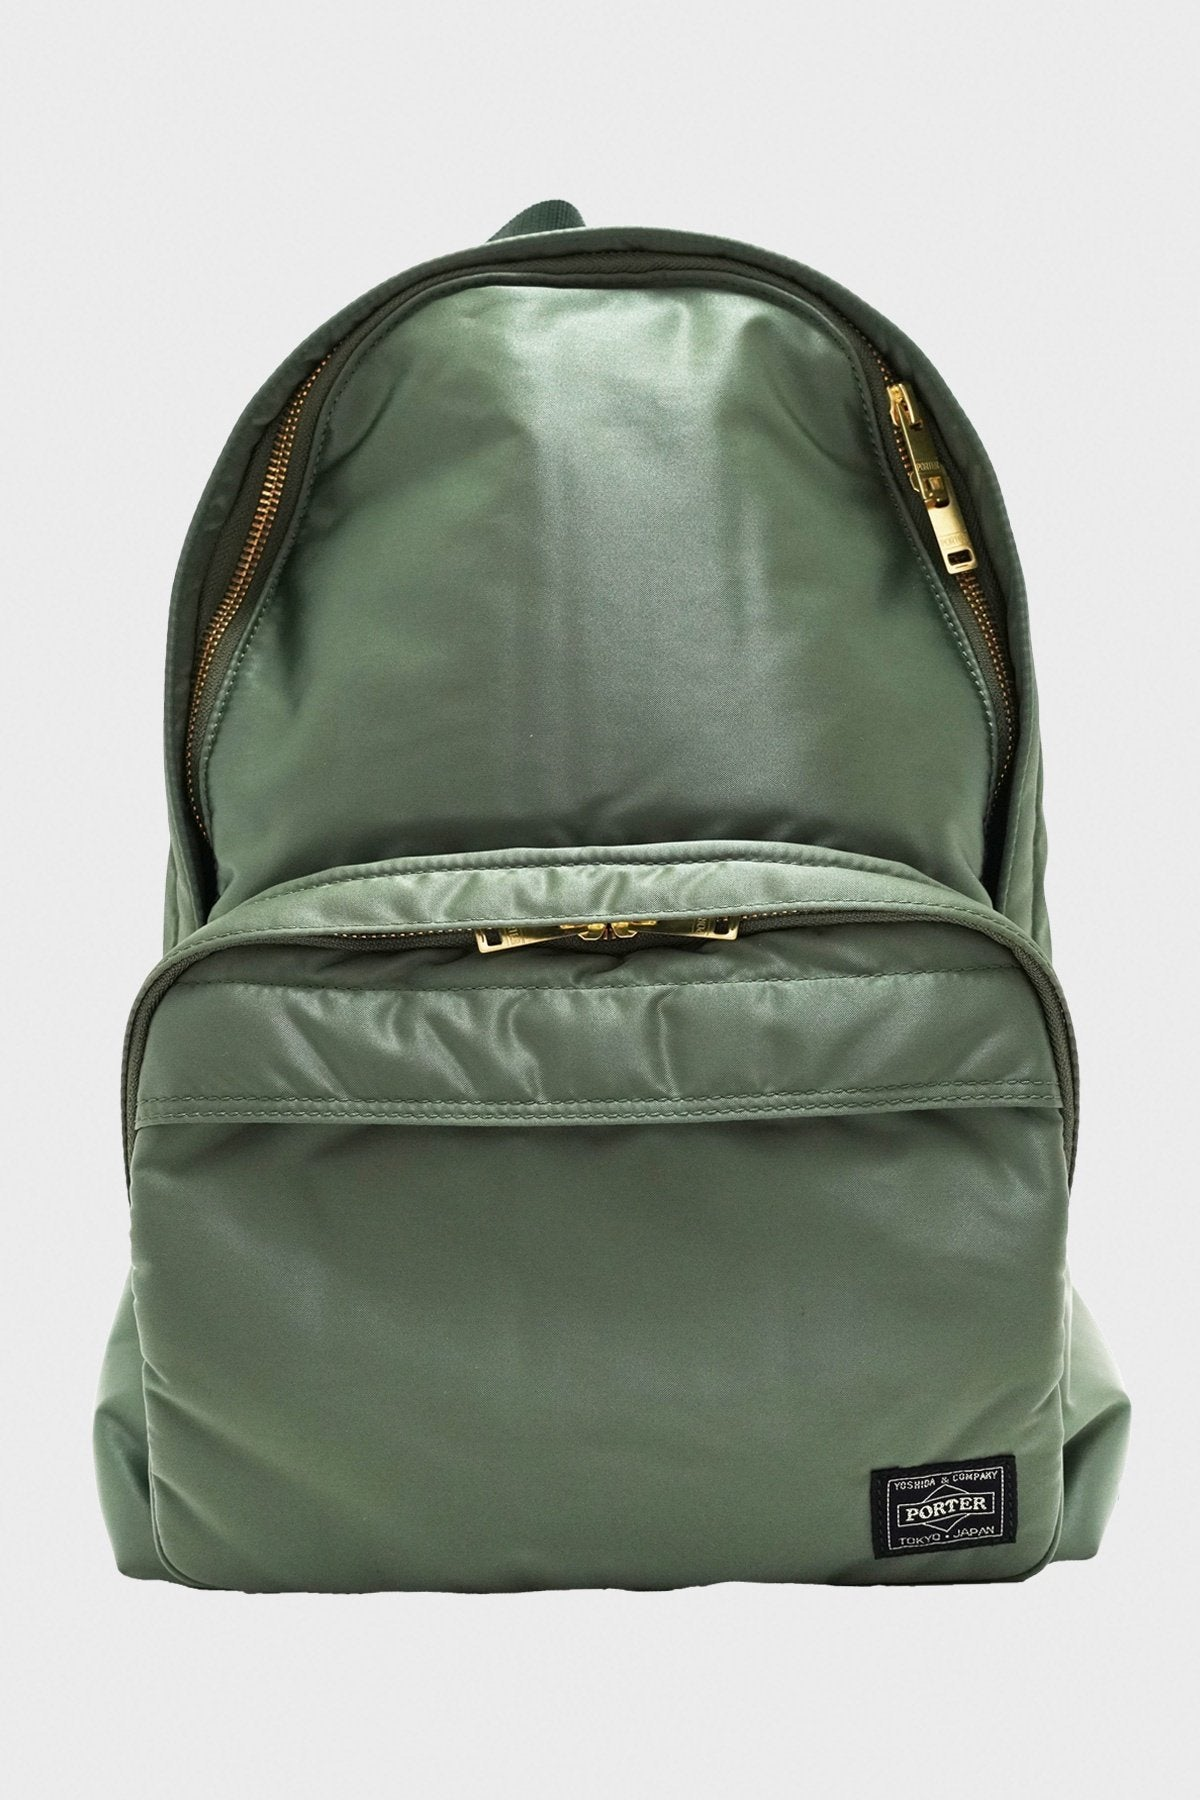 Porter Yoshida and Co - Daypack - Sage Green - Canoe Club